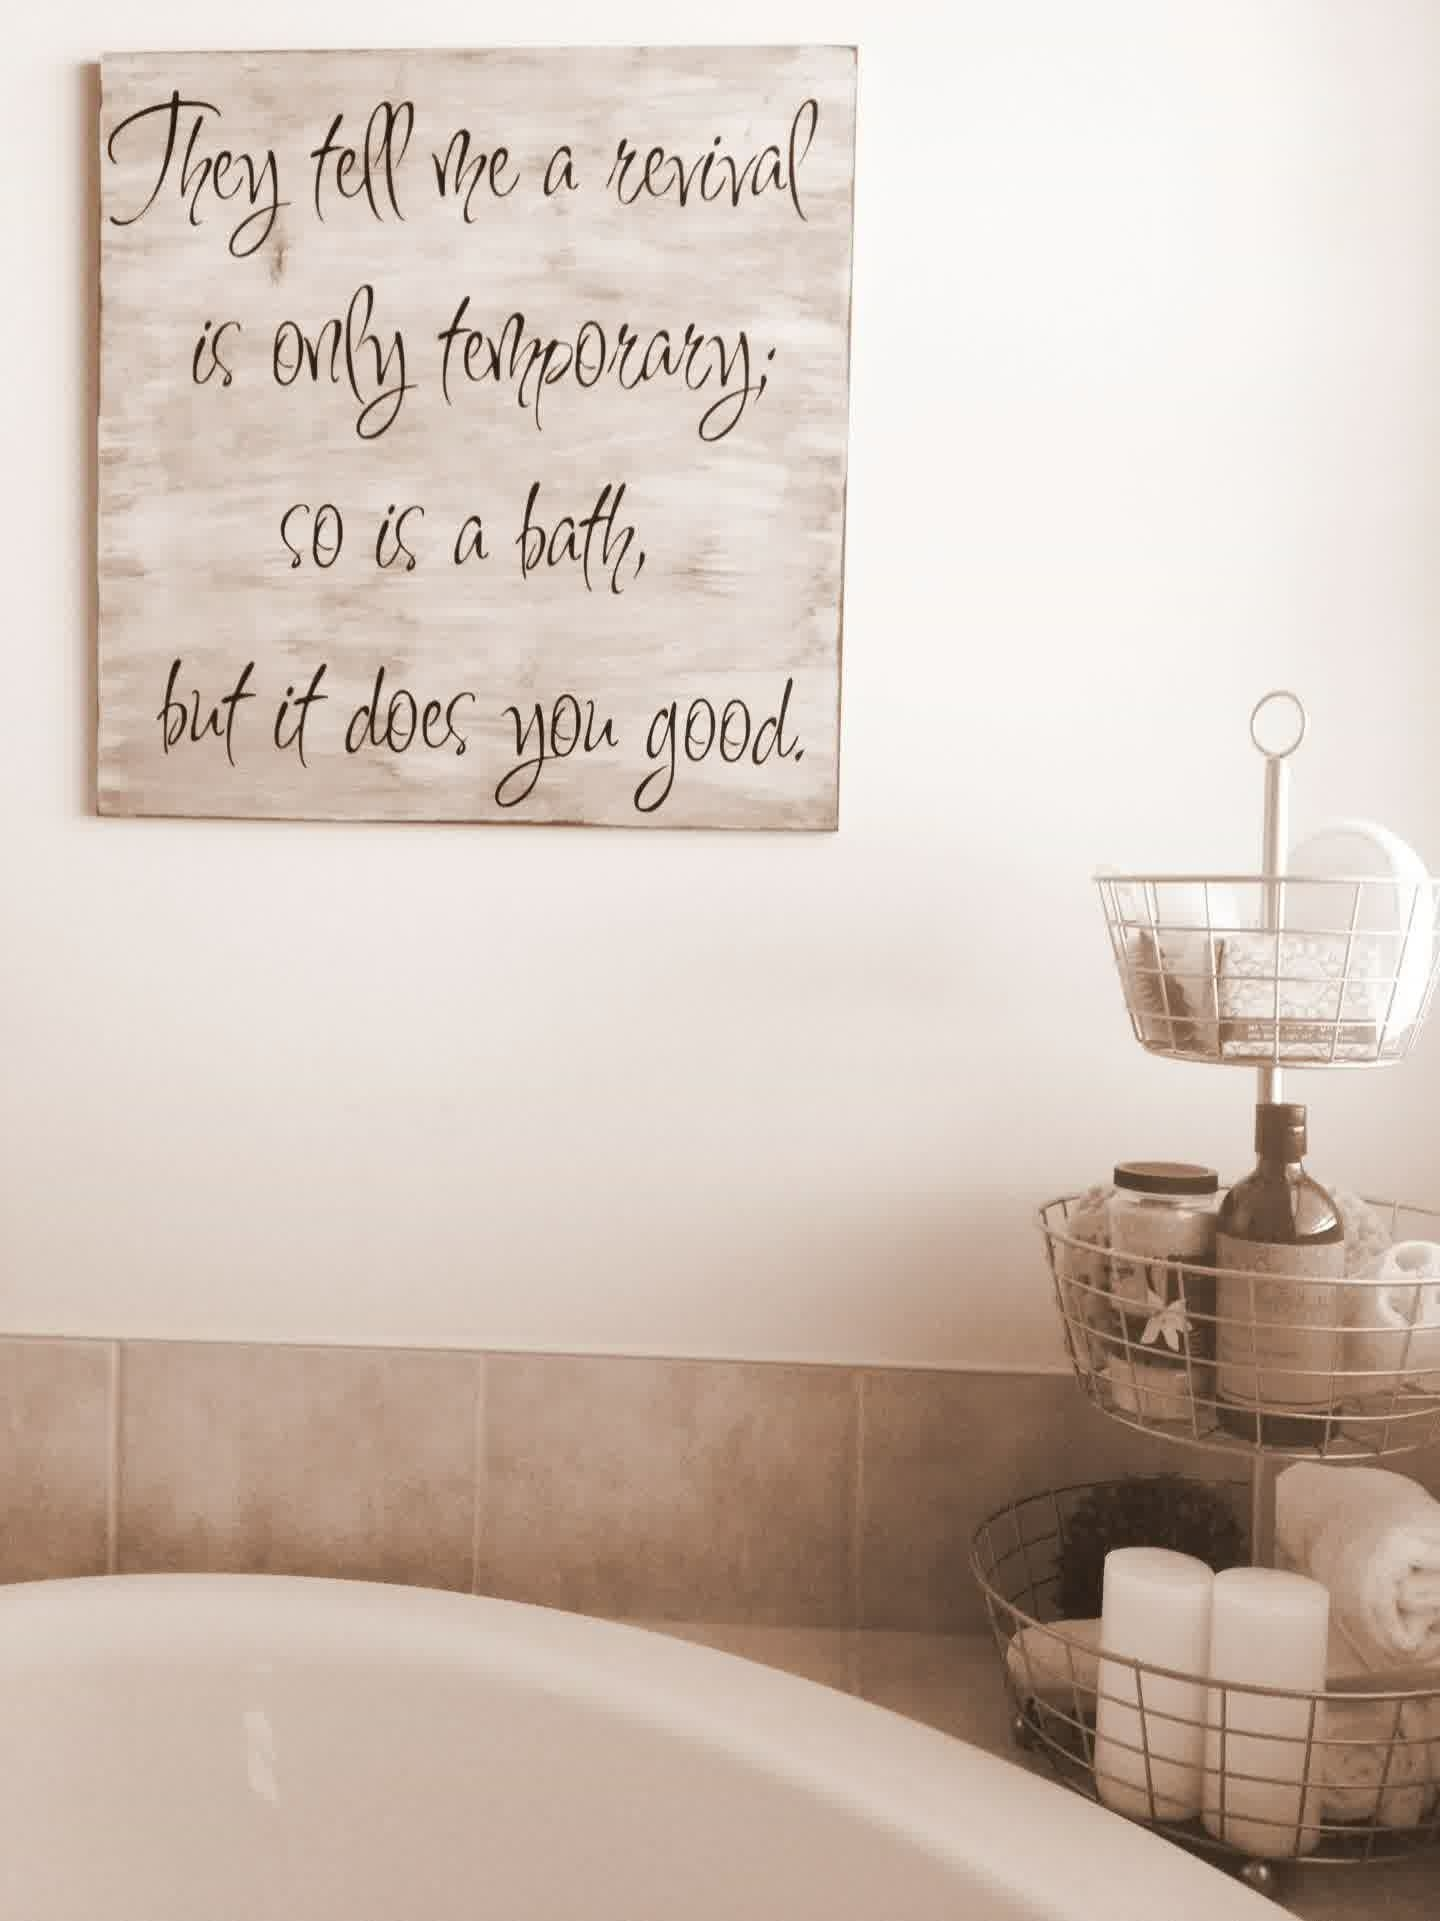 Bathroom : Impressive Bath Wall Art Or Bathroom Etsy Wash Your For Most Recent Etsy Wall Accents (View 2 of 15)